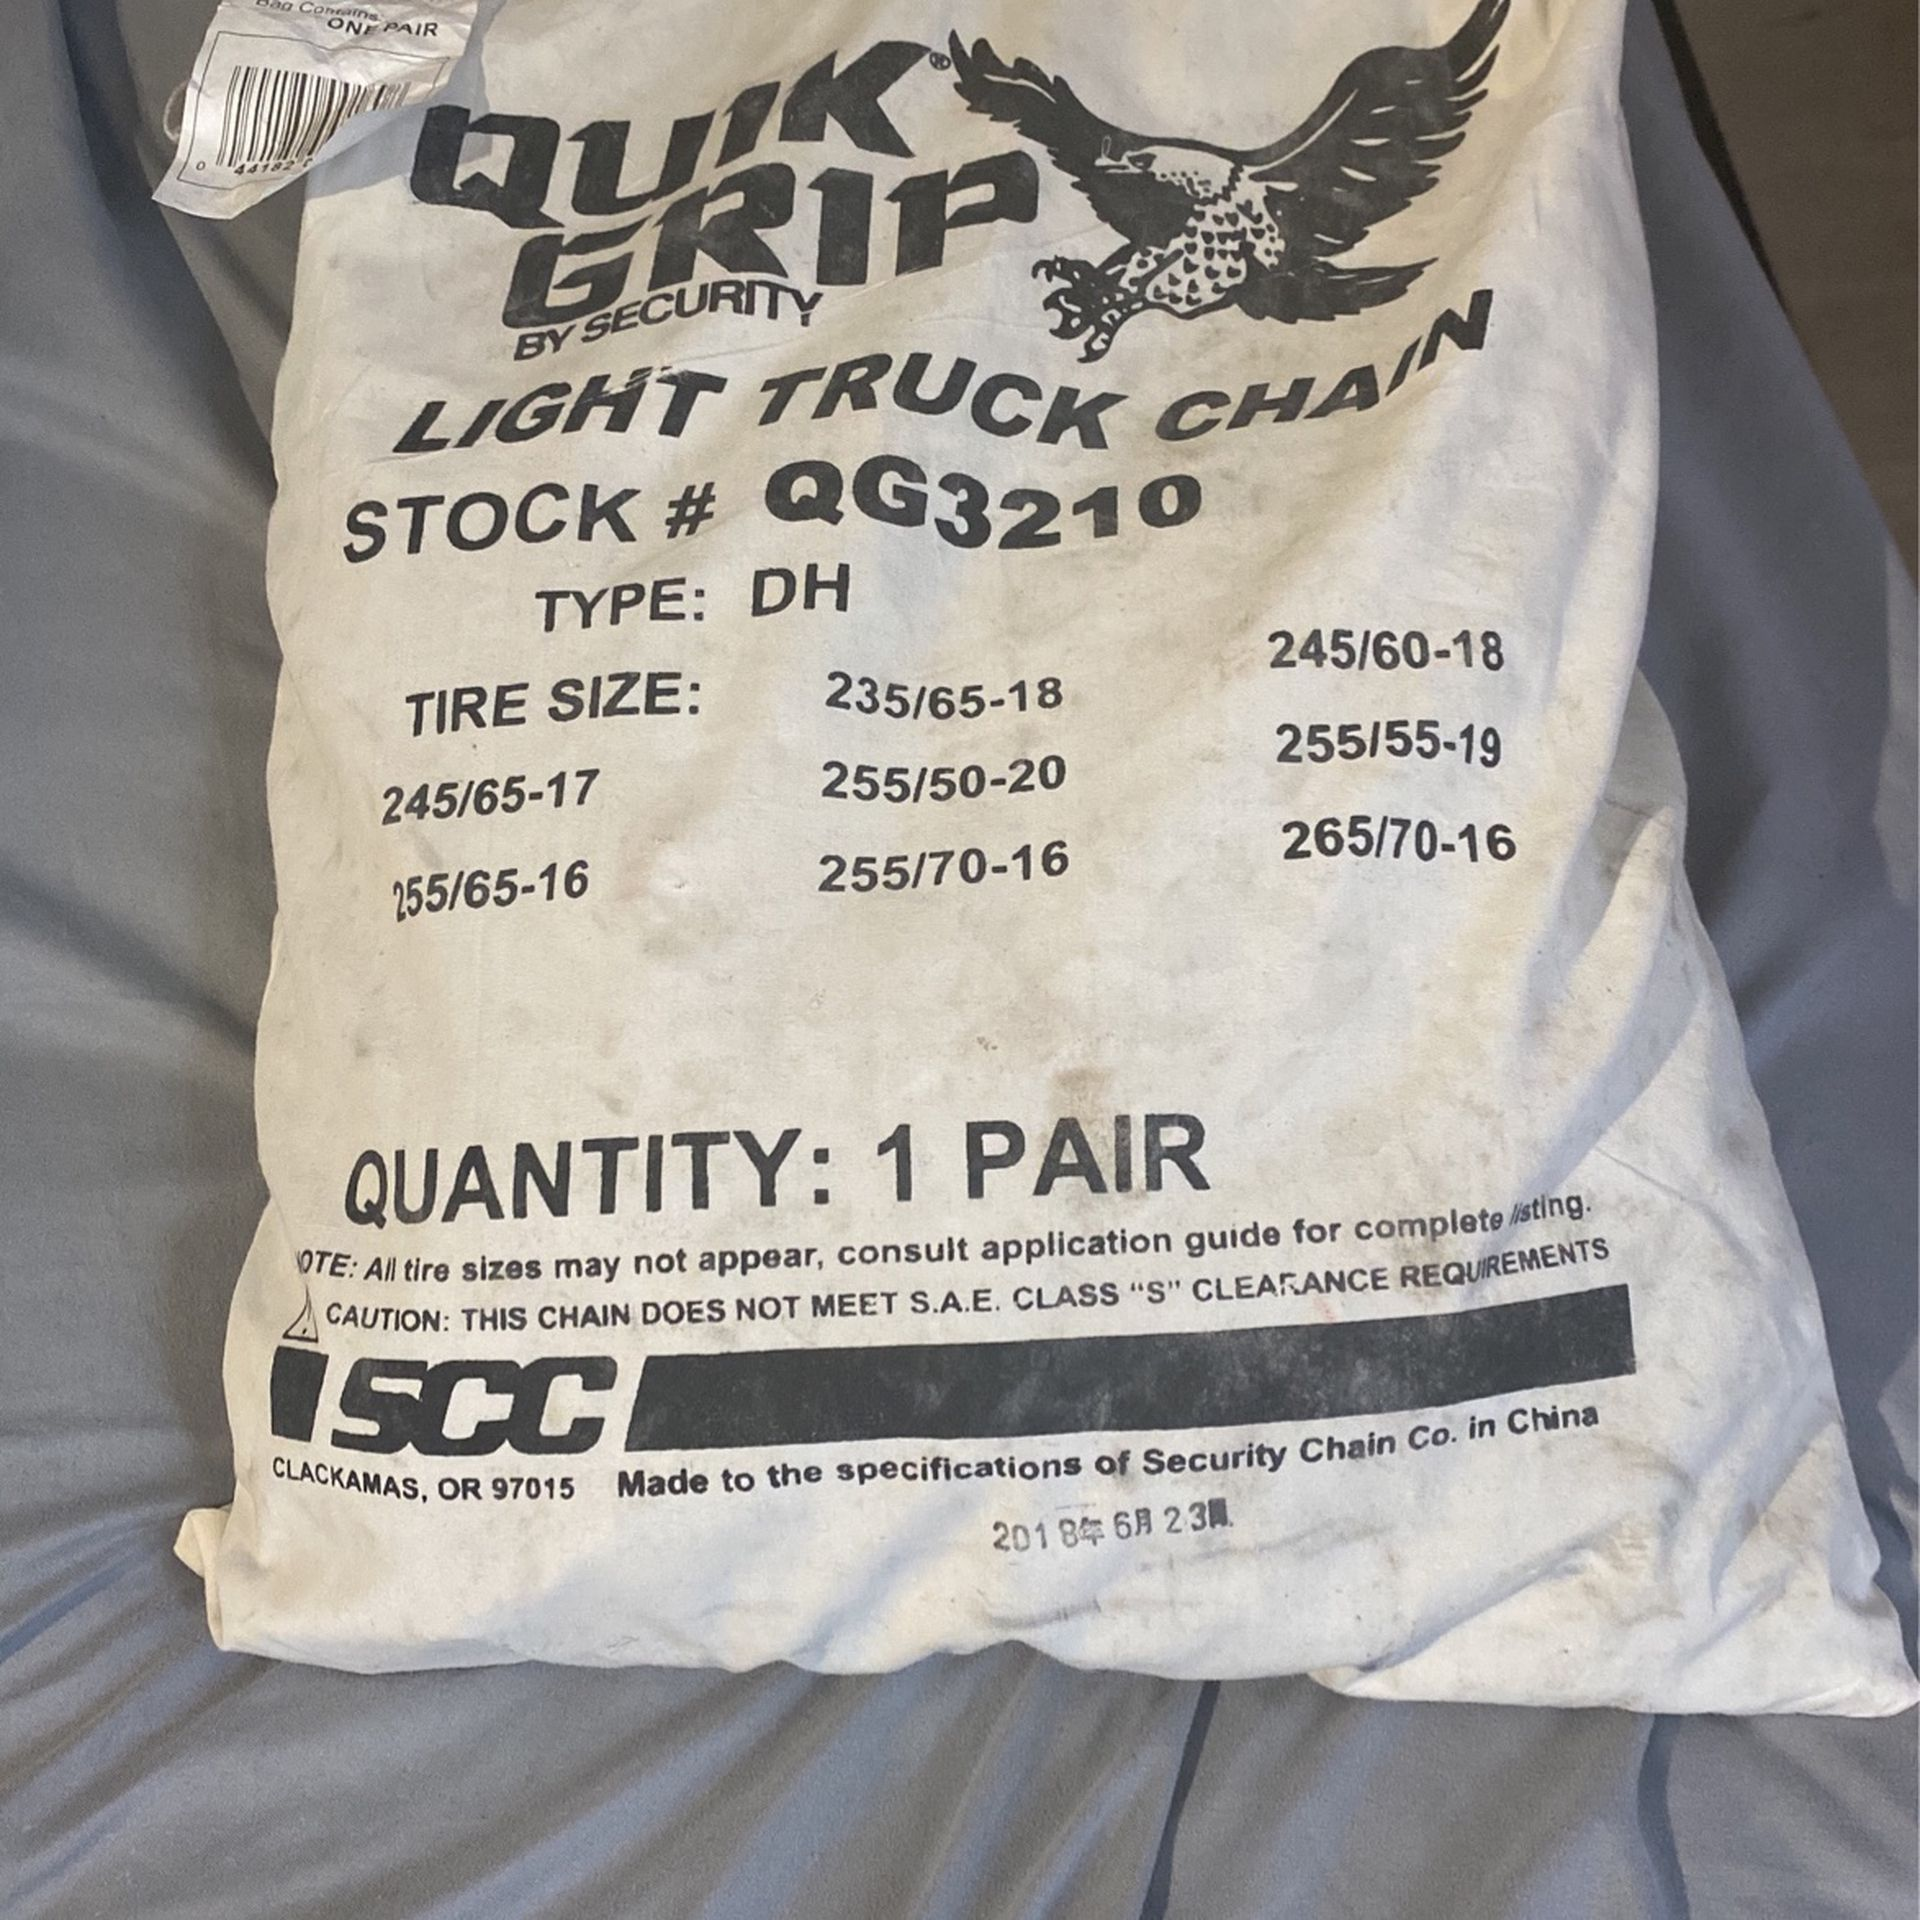 Quik Grip Tire Chain By Security Chain Co.